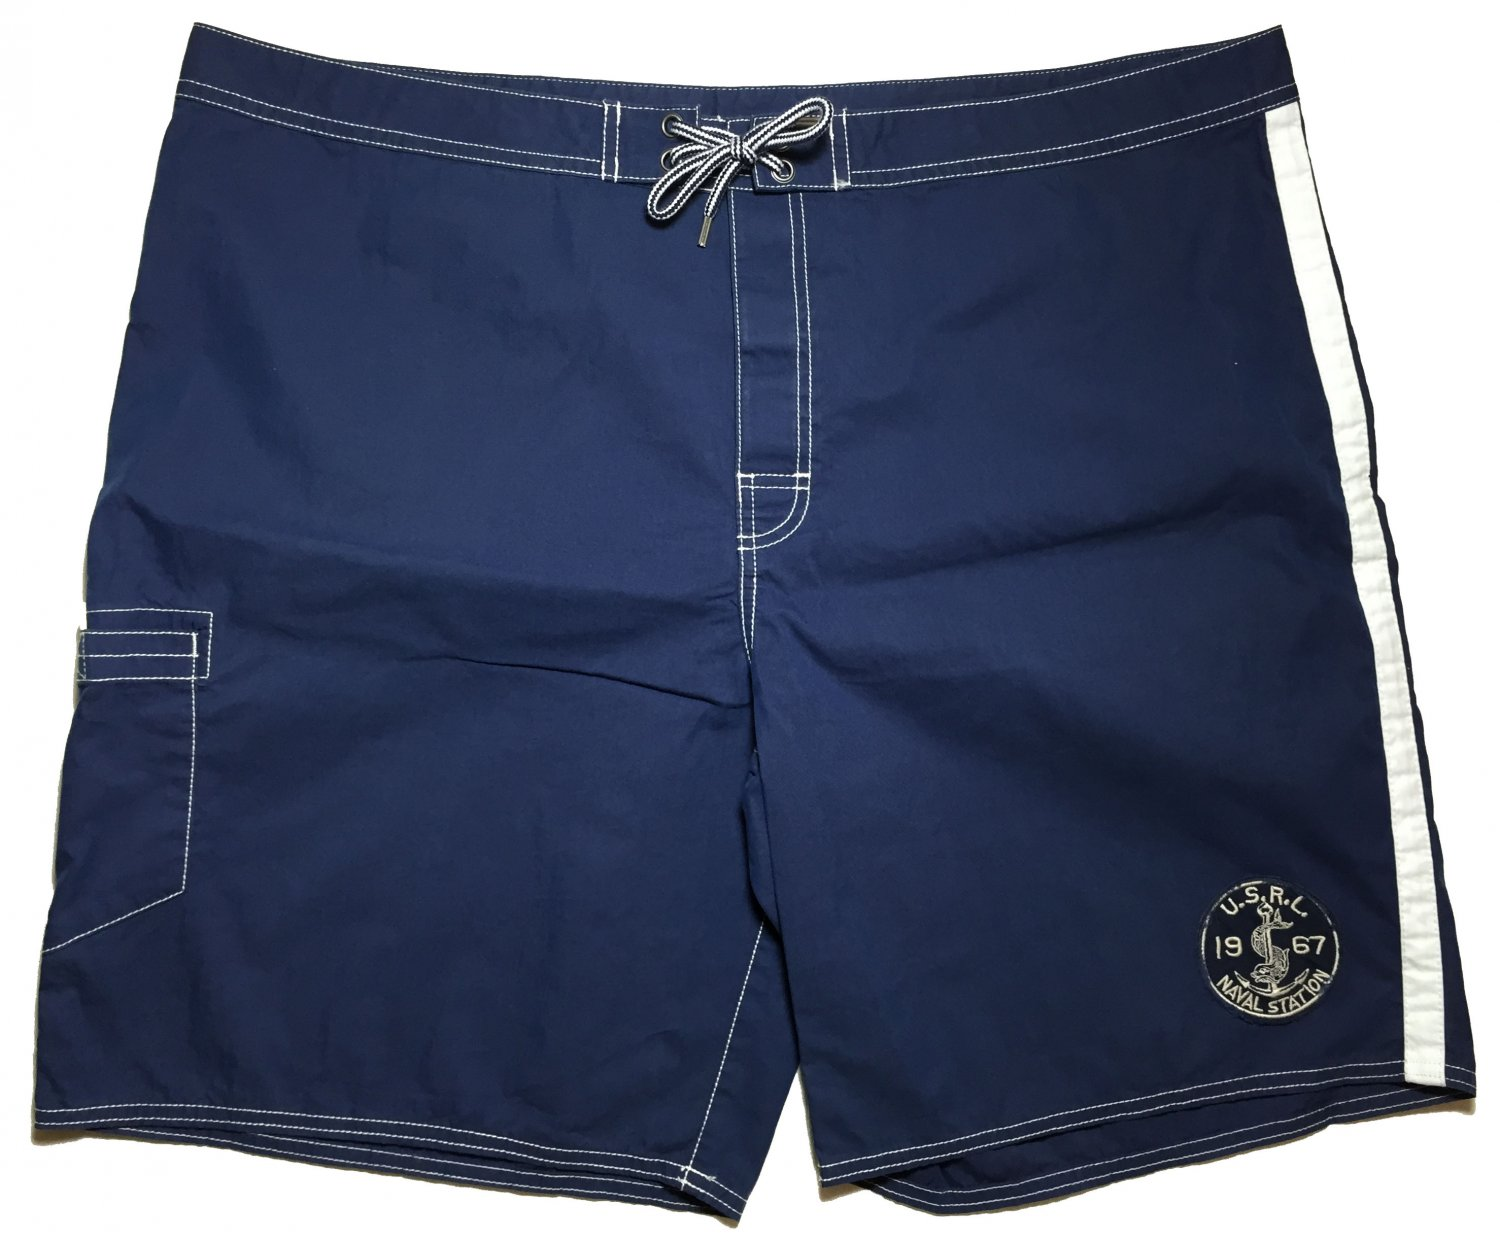 Men 42 Polo Ralph Lauren Swimwear Board Shorts Naval Trunks Navy Blue